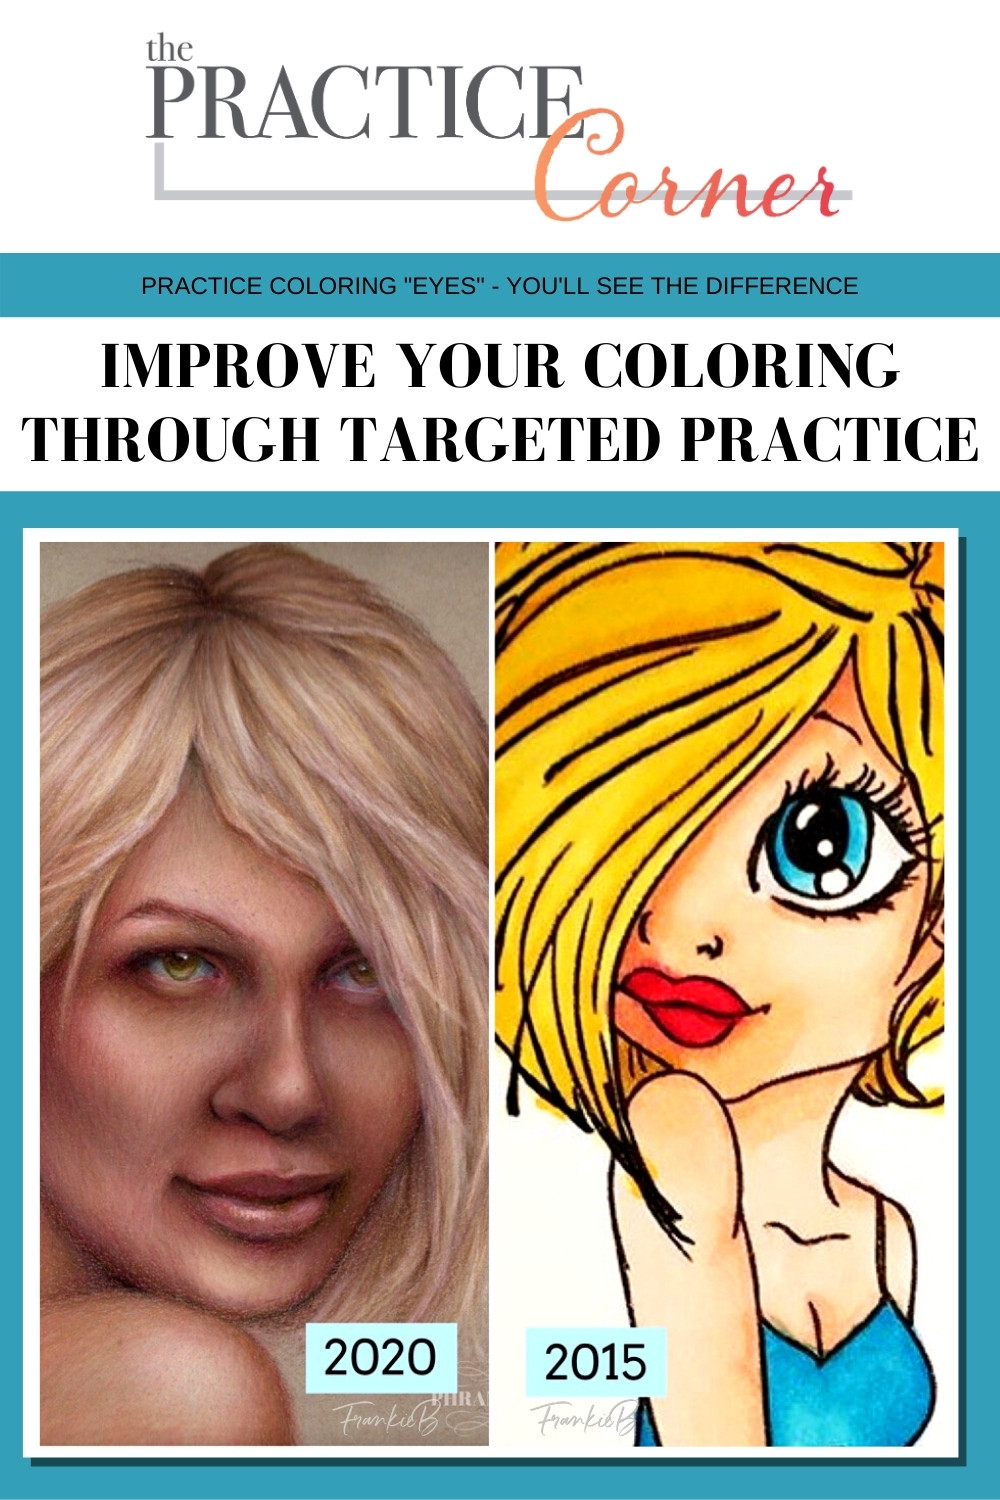 Measure your coloring progress | Practice makes progress | How to improve your coloring | #coloredpencil #coloredpencilpractice #copicmarker #copicmarkerpractice  #thepracticecorner #realisticcoloring